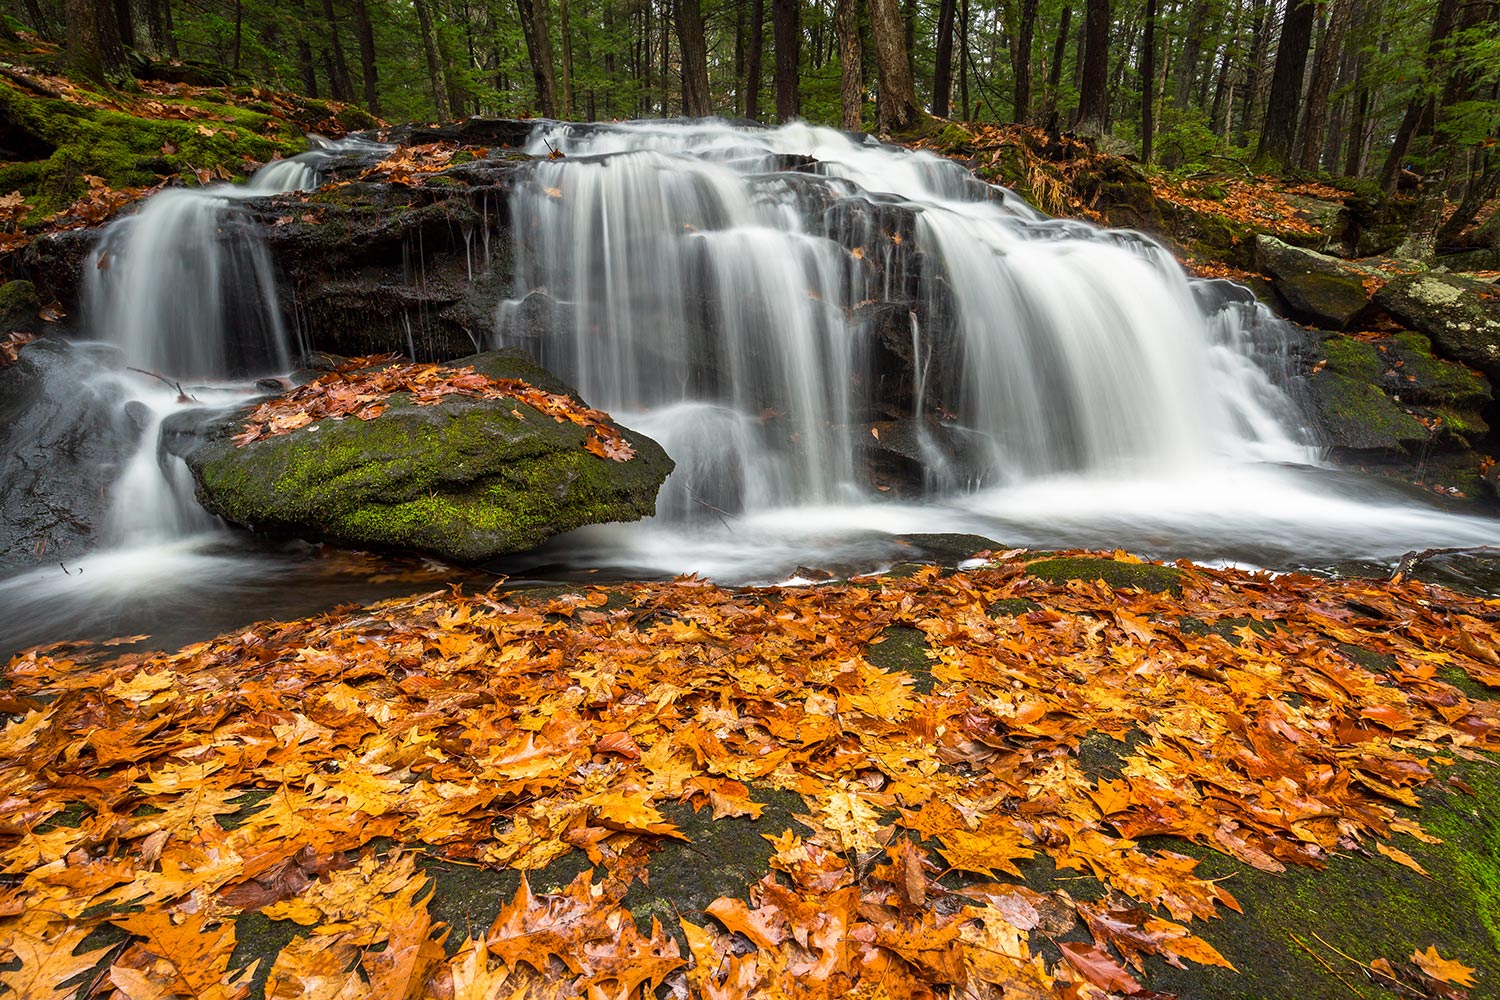 Resting leaves of late fall, Tucker Falls.